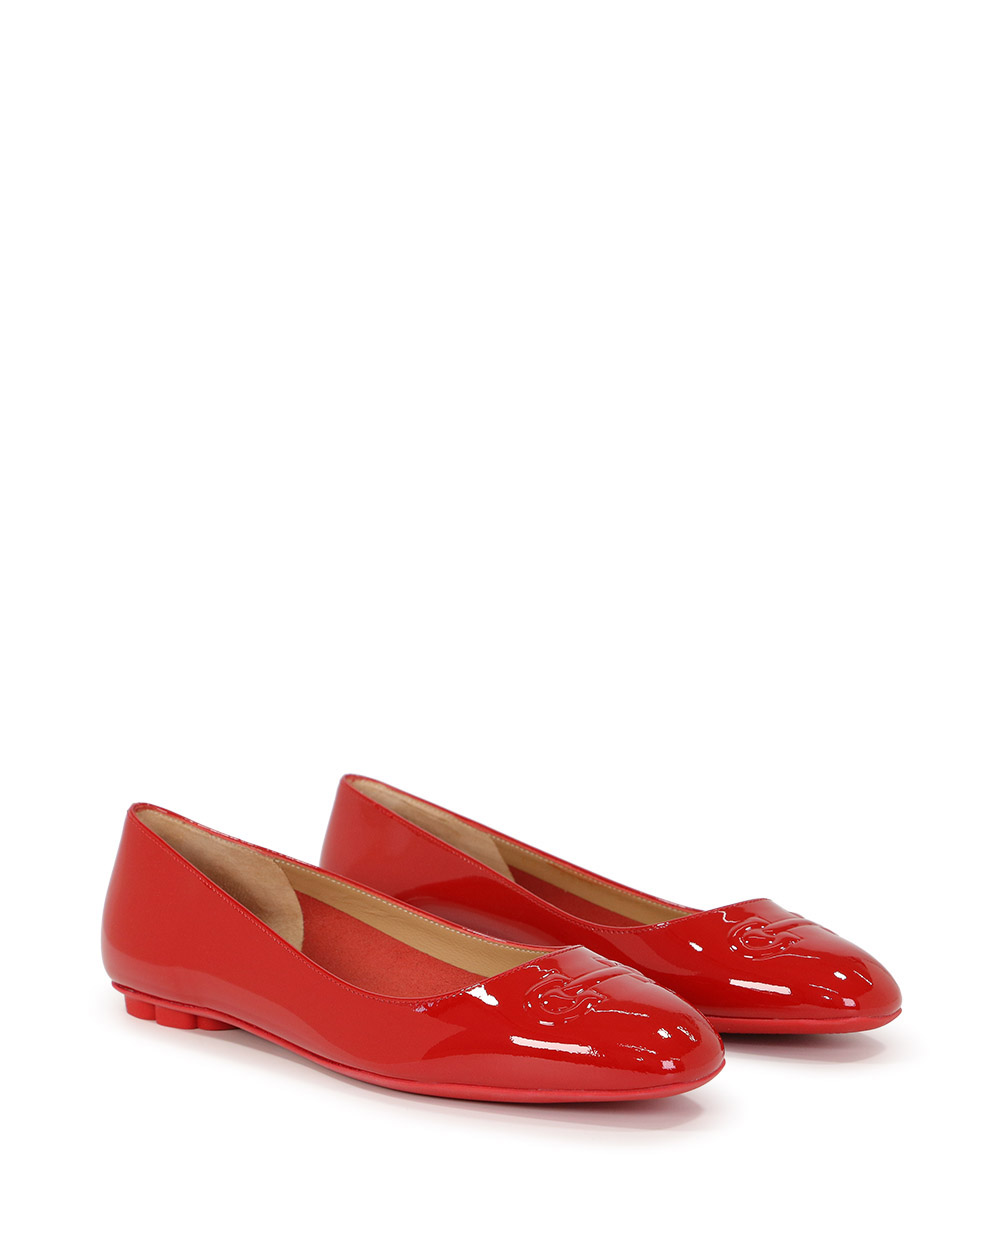 BRONI Patent Leather Casual Flats 1